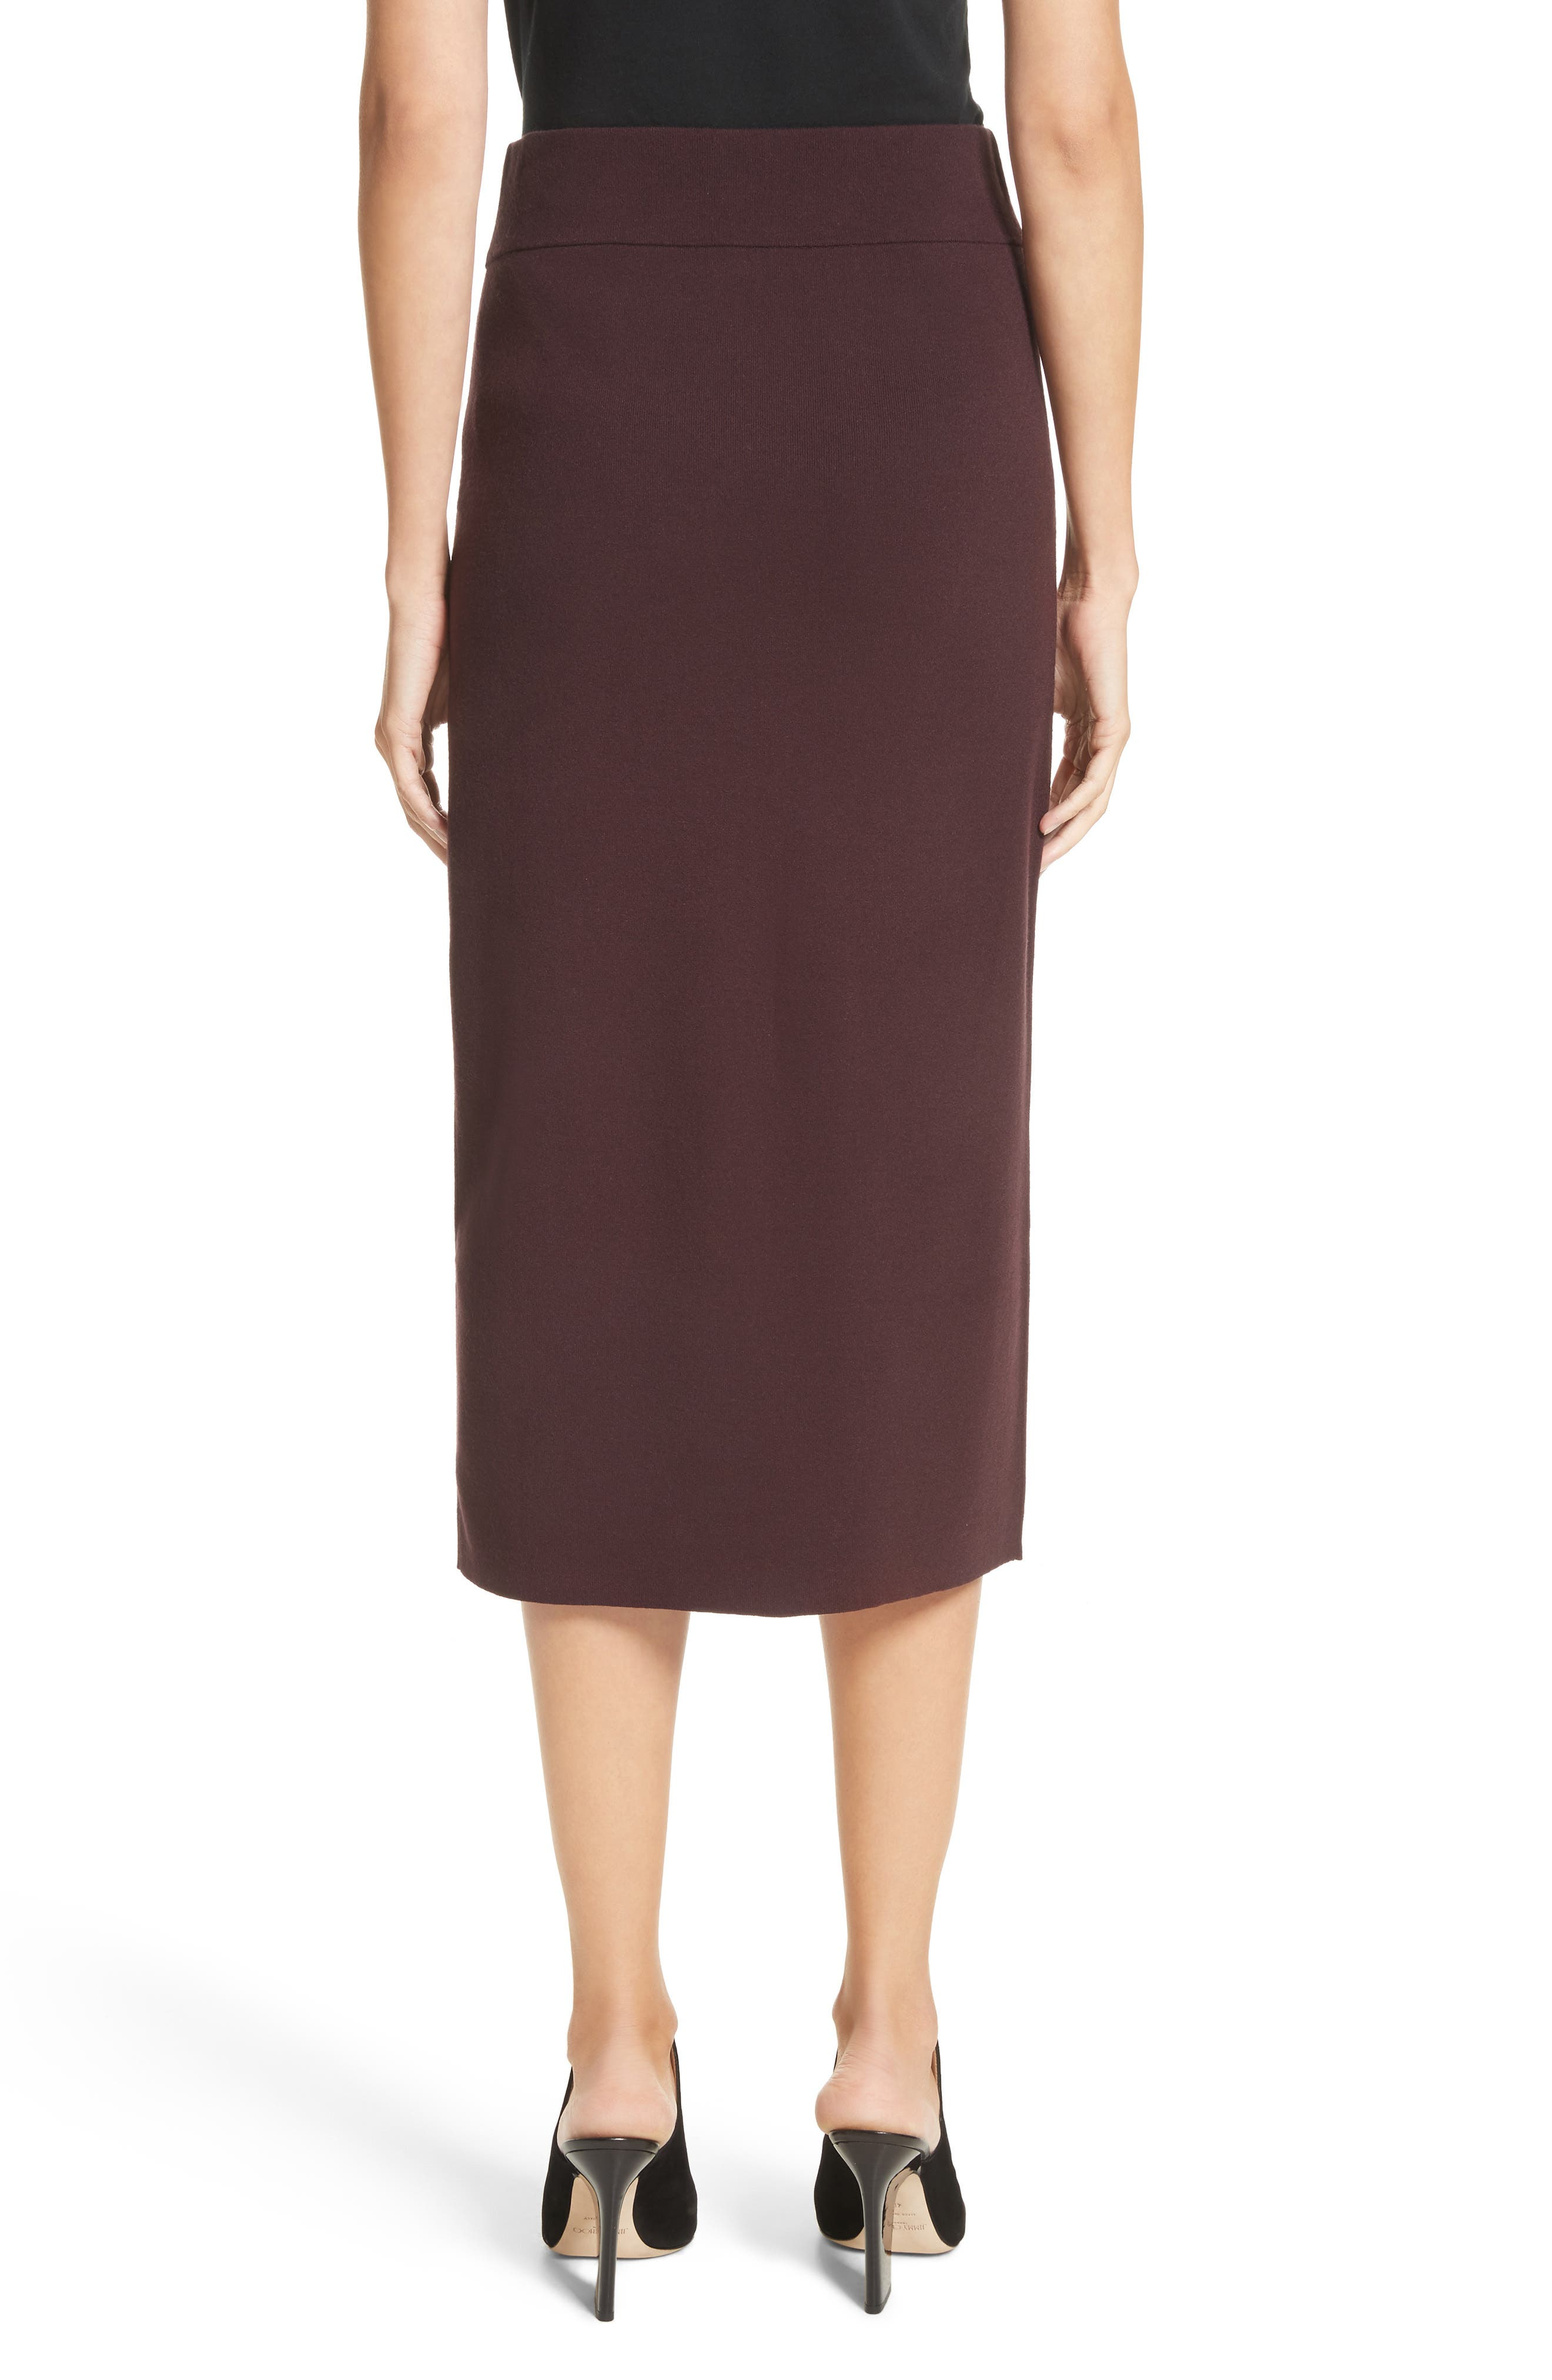 Smith Knit Pencil Skirt,                             Alternate thumbnail 2, color,